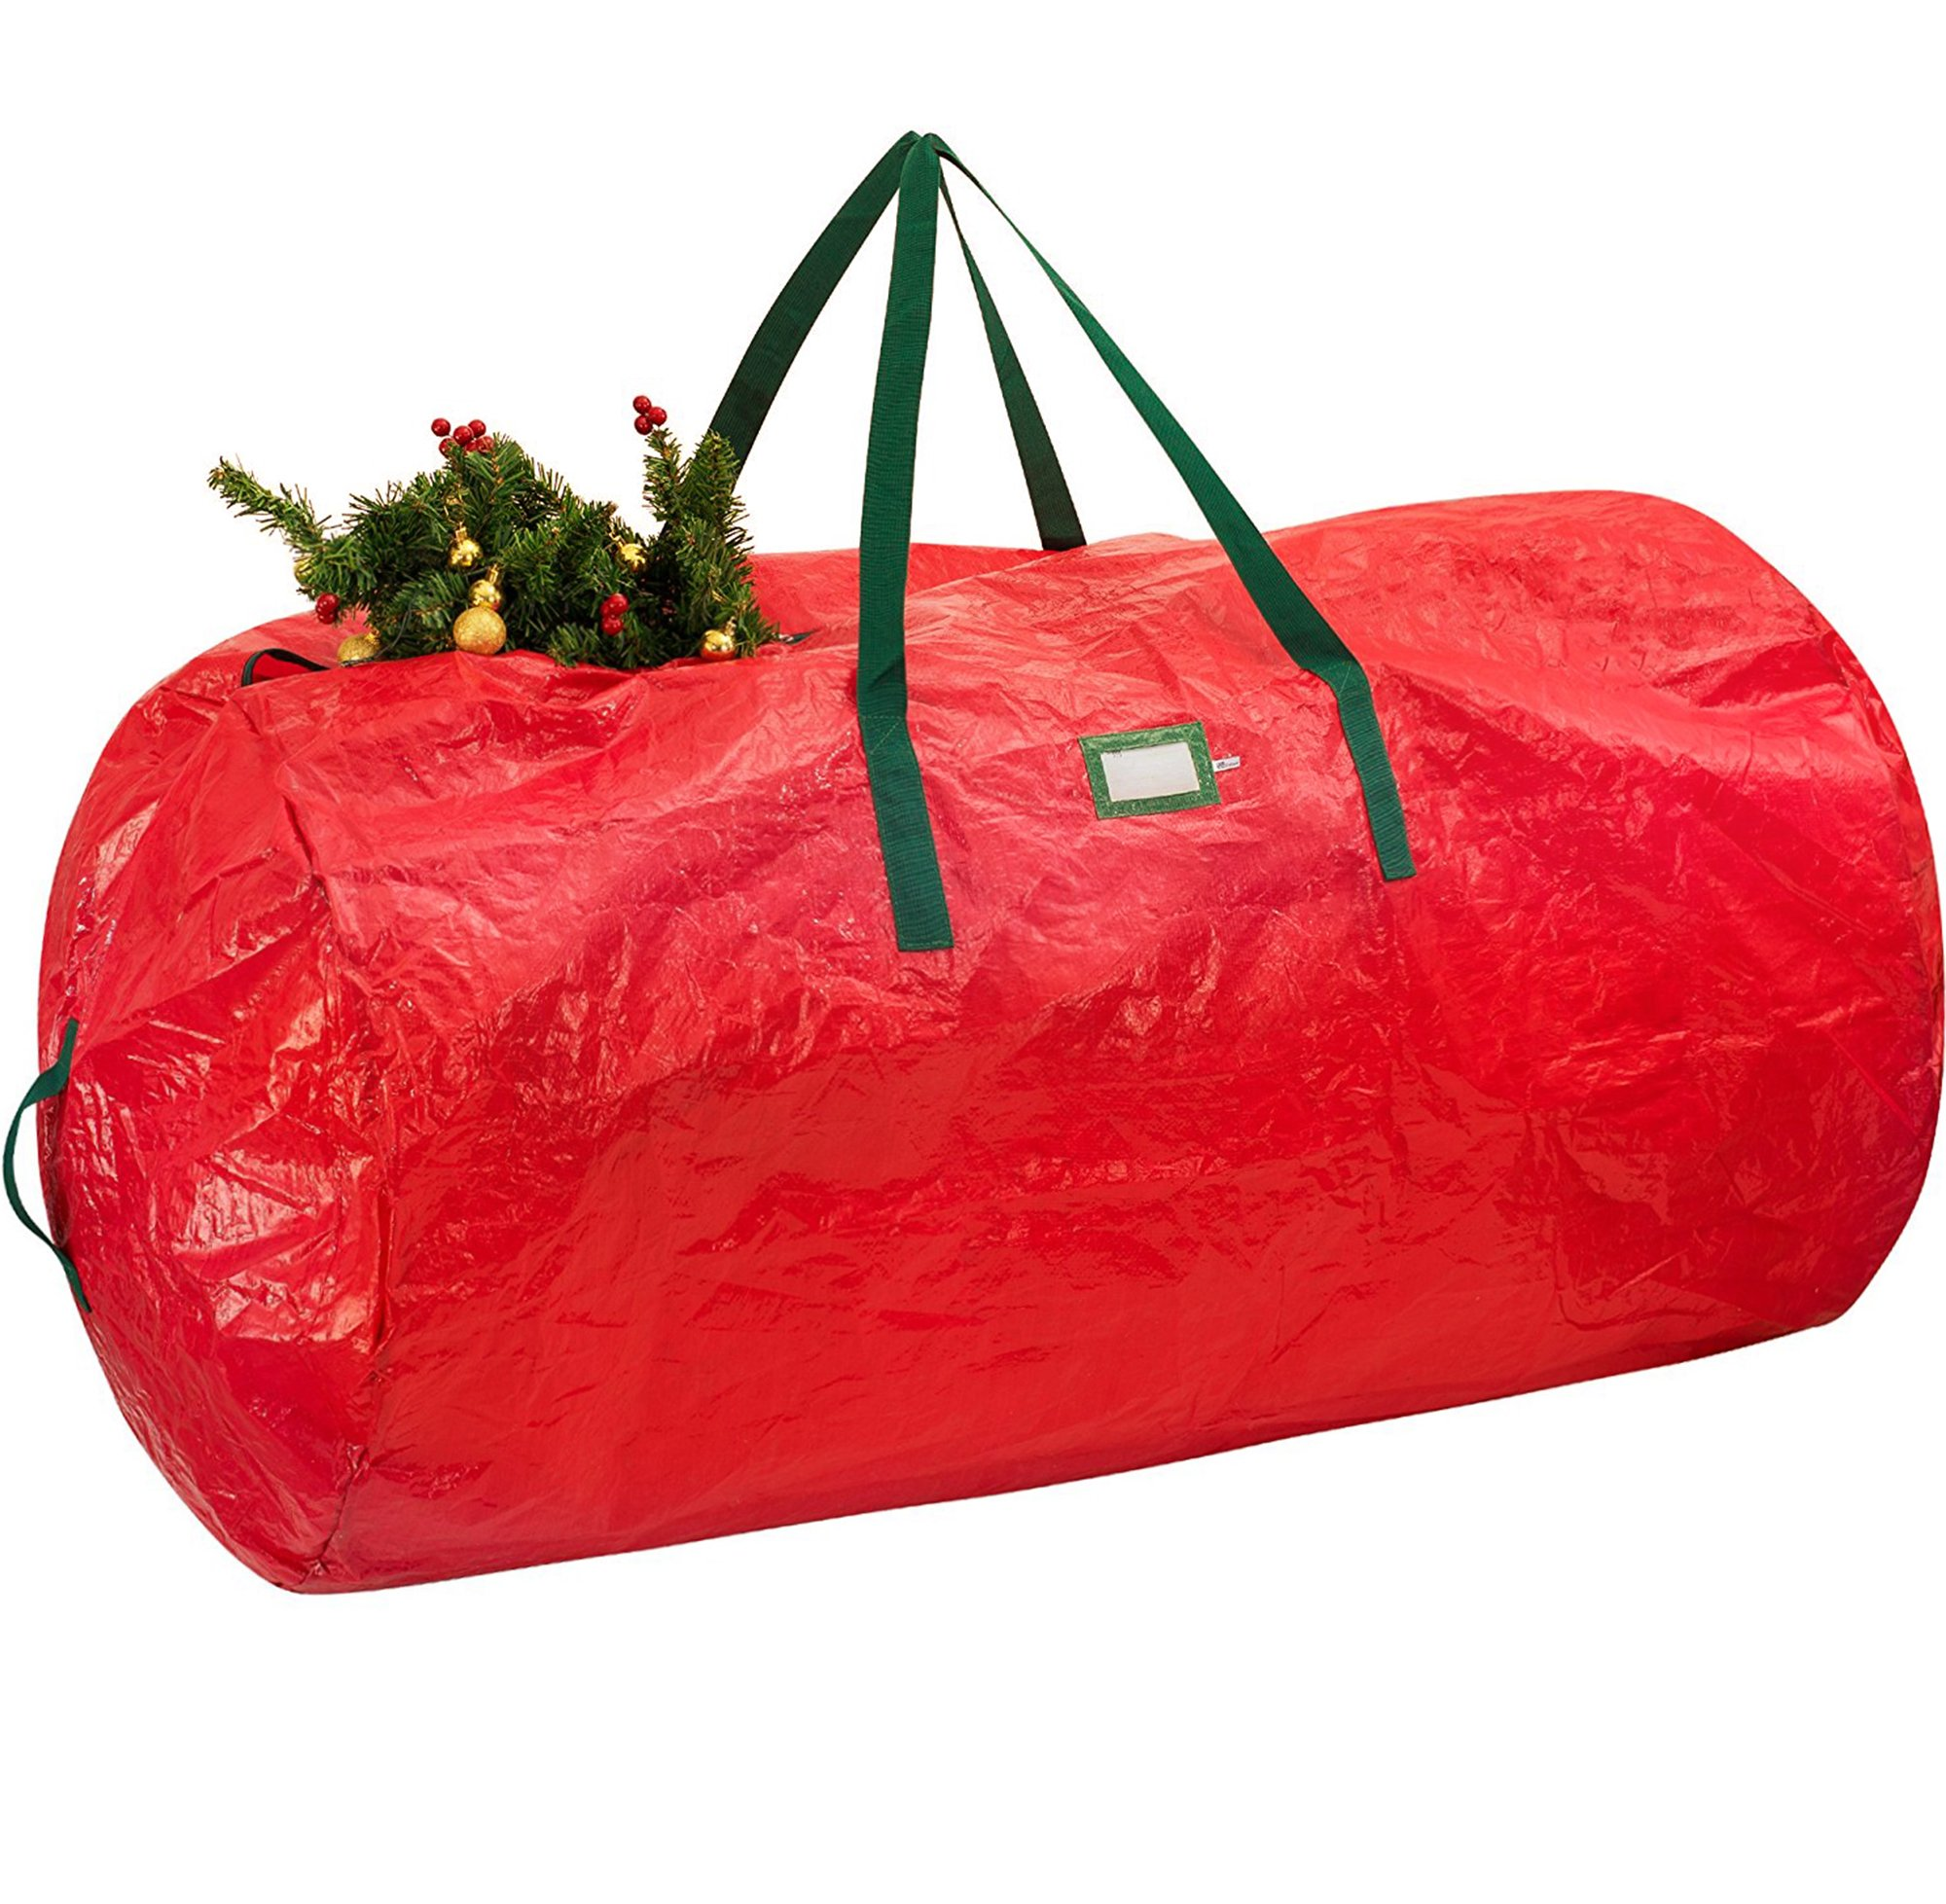 "ZOBER Christmas Tree Bag - Non-Woven Polyester Artificial Christmas Tree Storage Bag for Christmas Tree up to 9 ft Tall with High Performance Zipper 60"" x 30"" x 30"" Red"